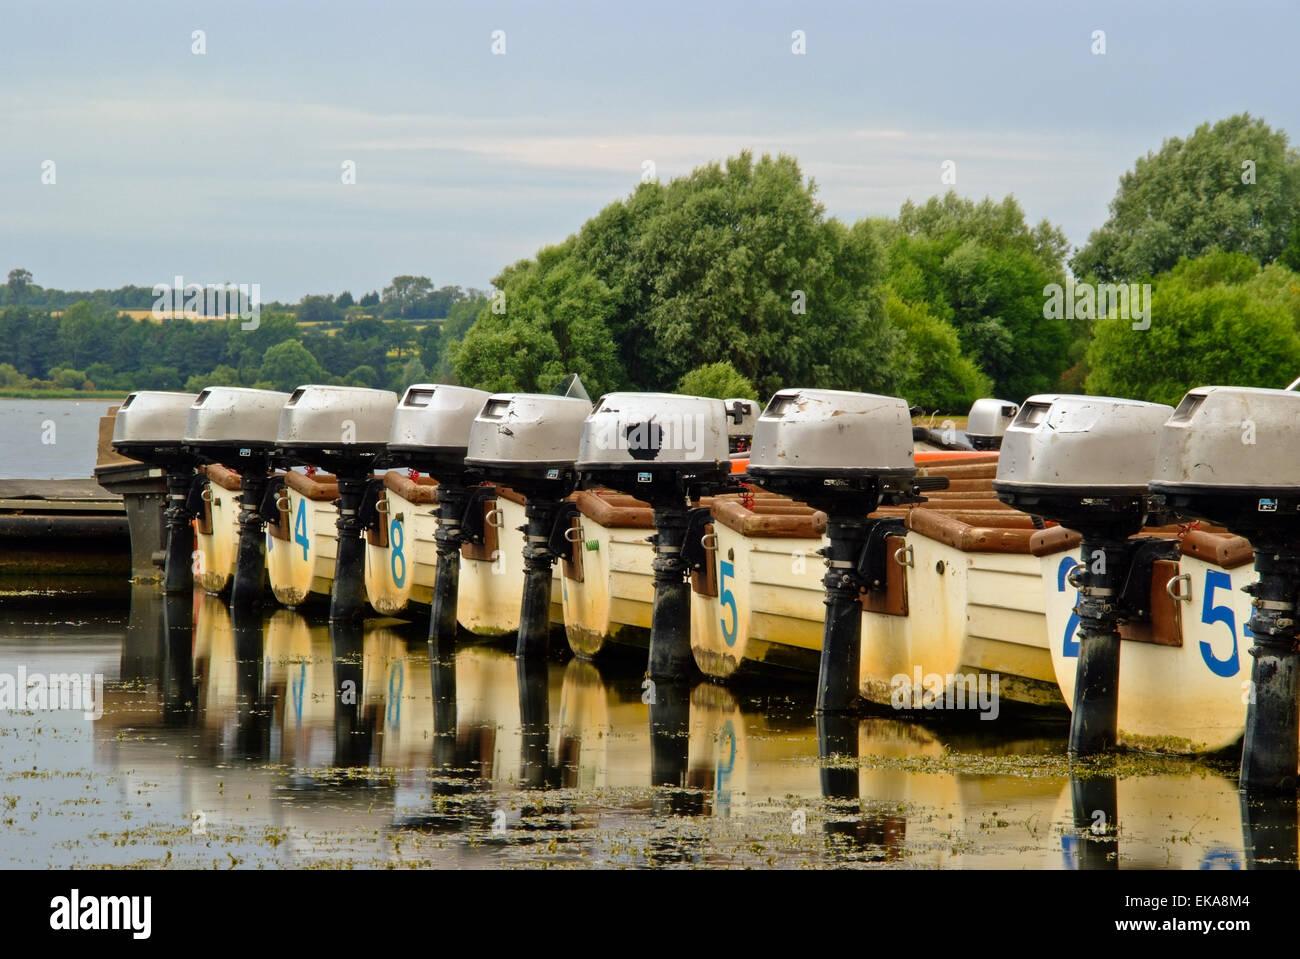 Line of fishing boats with outboard motors - Stock Image